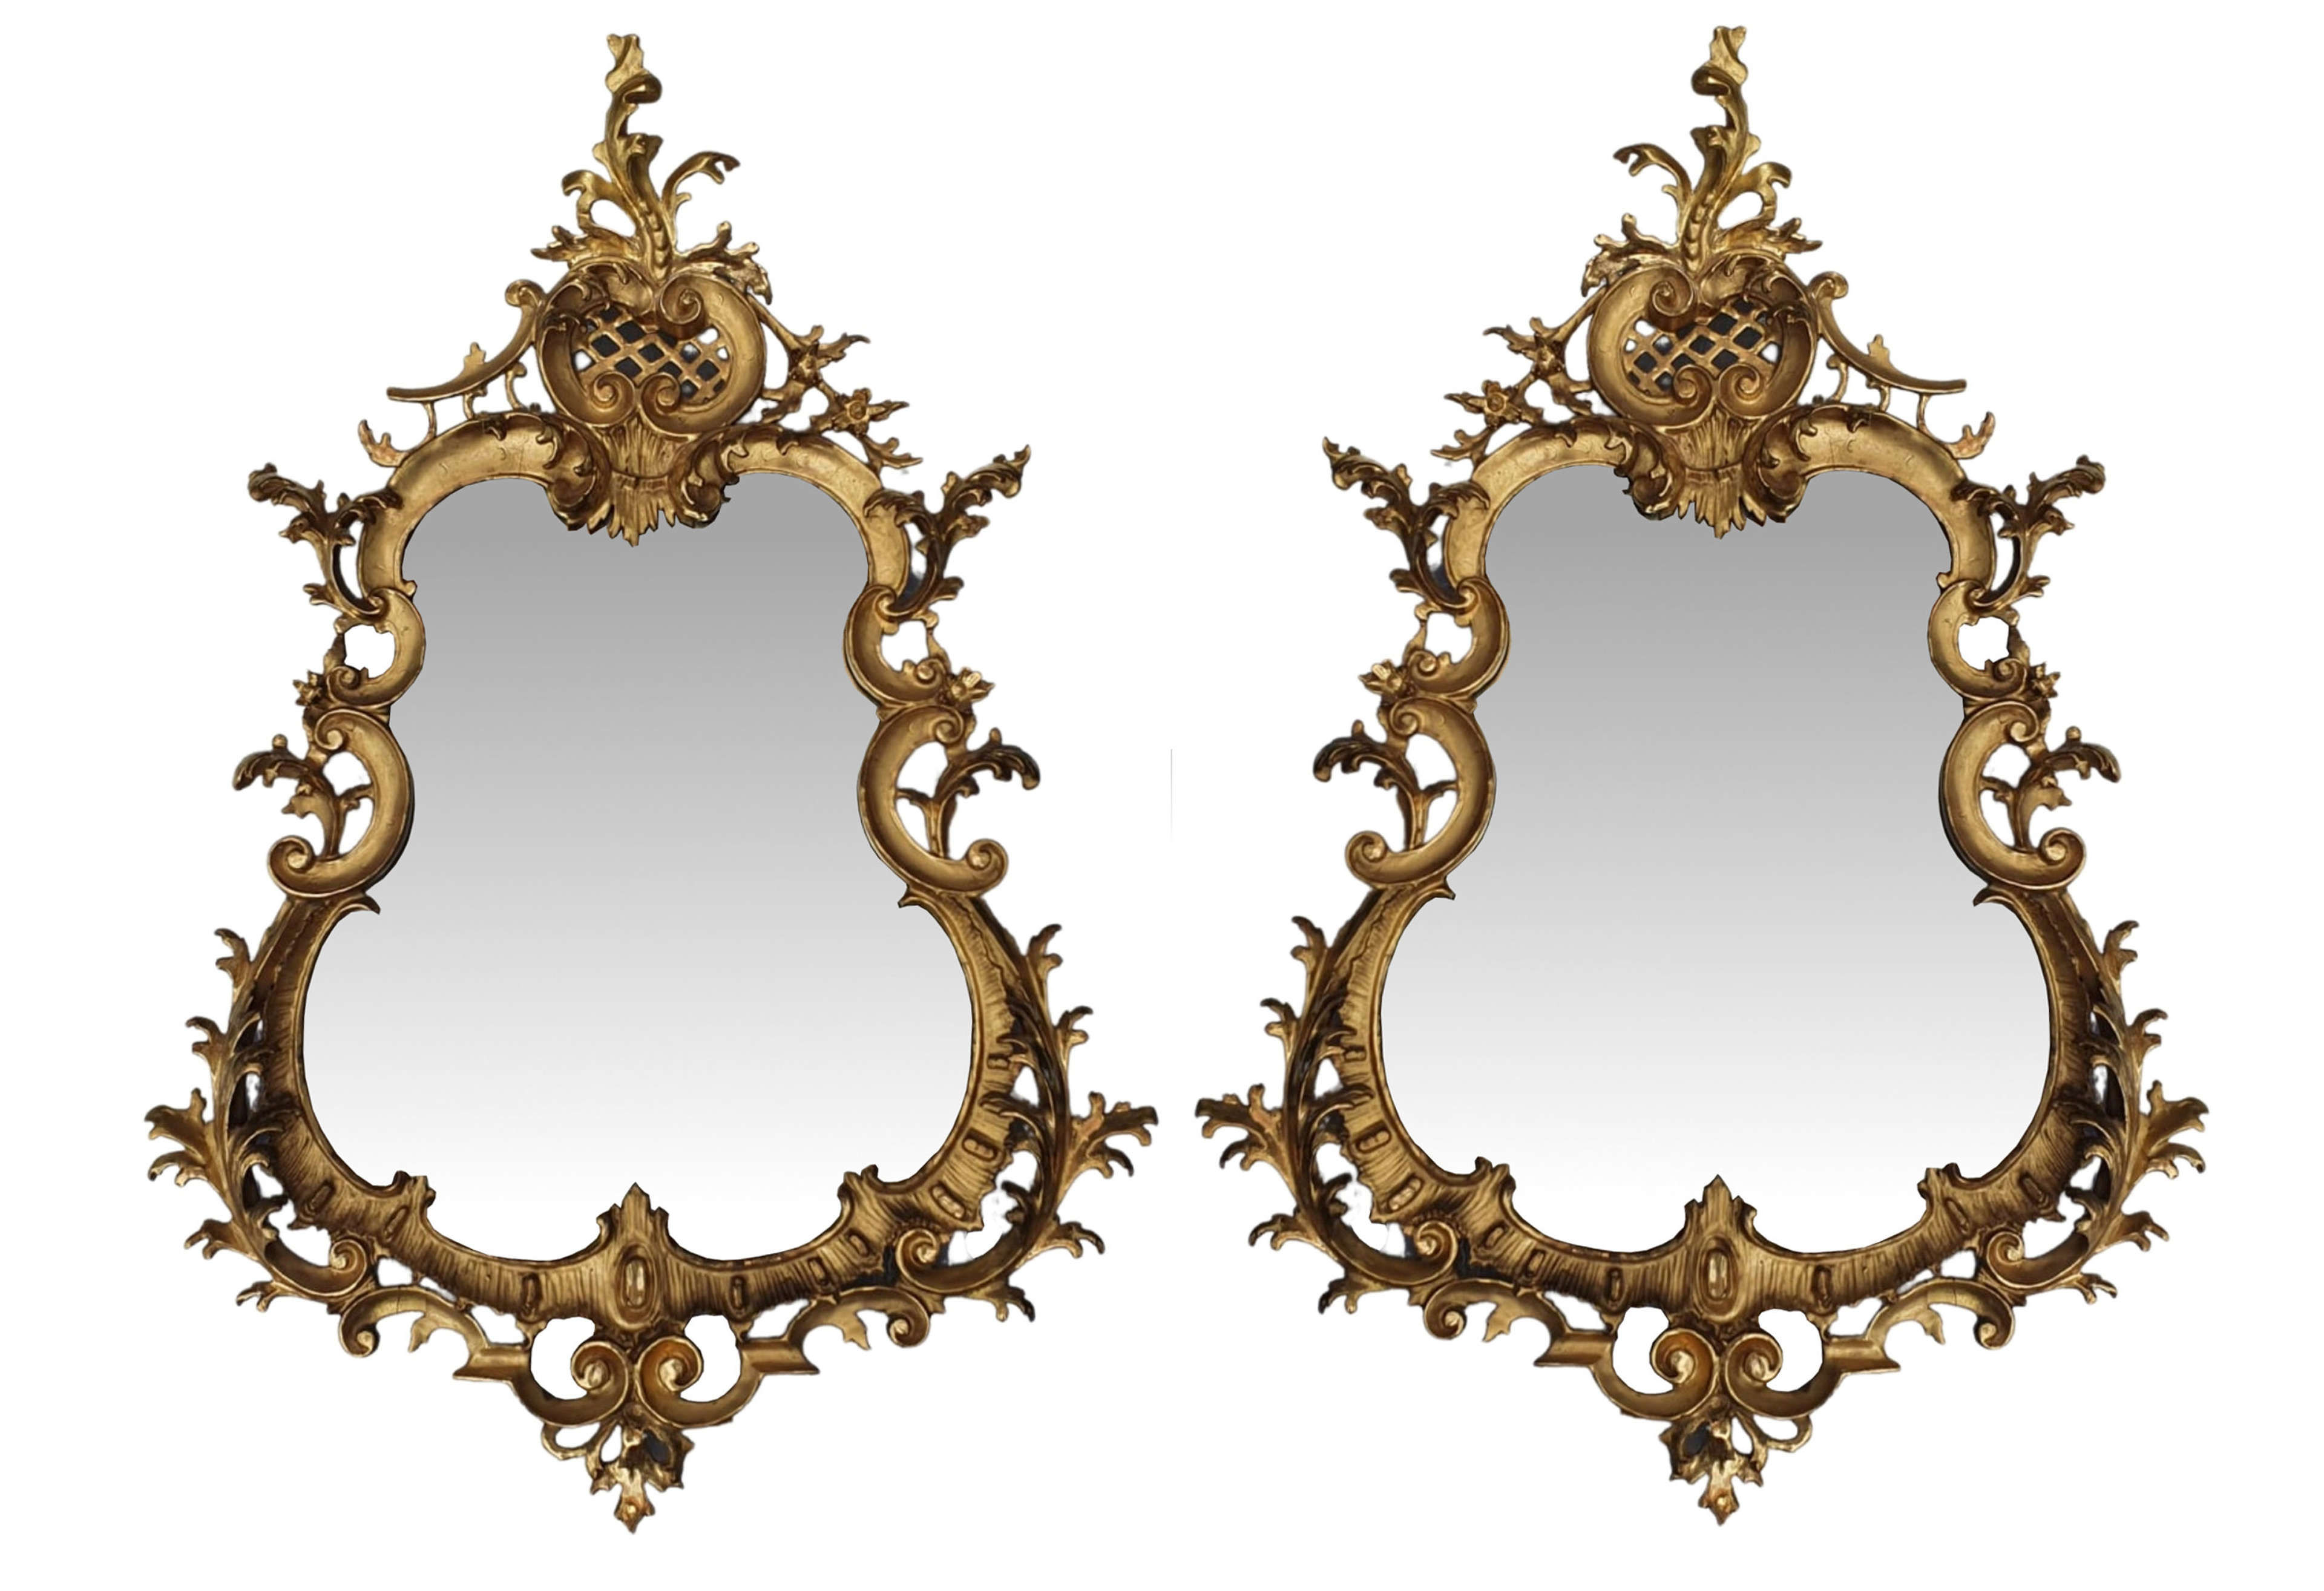 Rare Pair of 19th Century Pier Giltwood Mirrors in the Rococo Manner